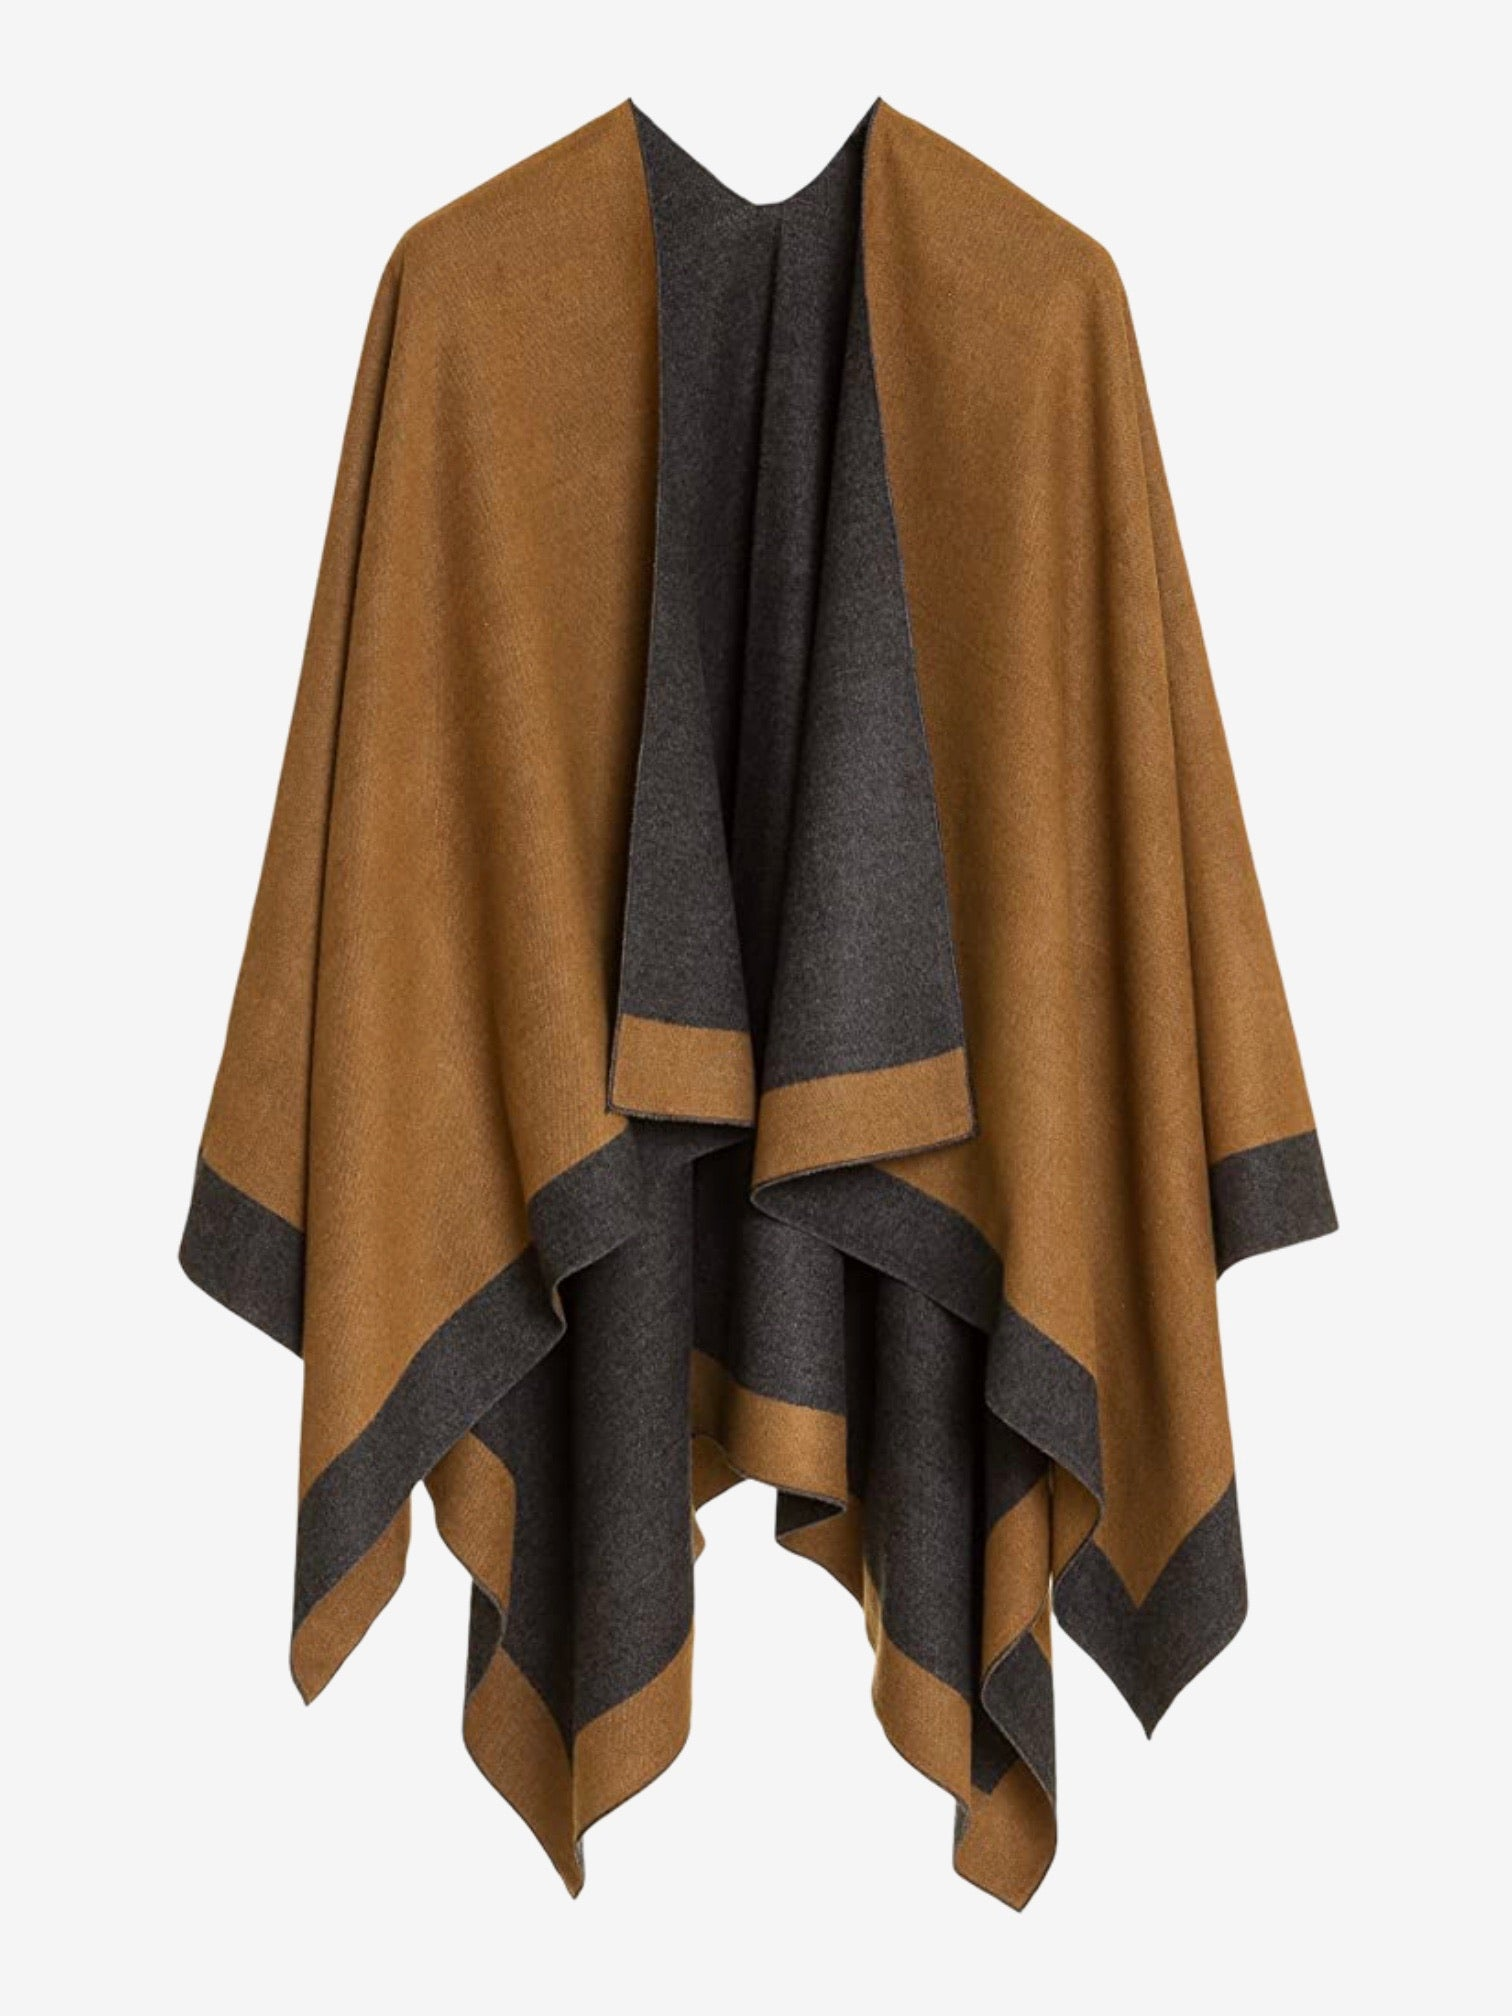 Reversible Cape - Camel & Charcoal